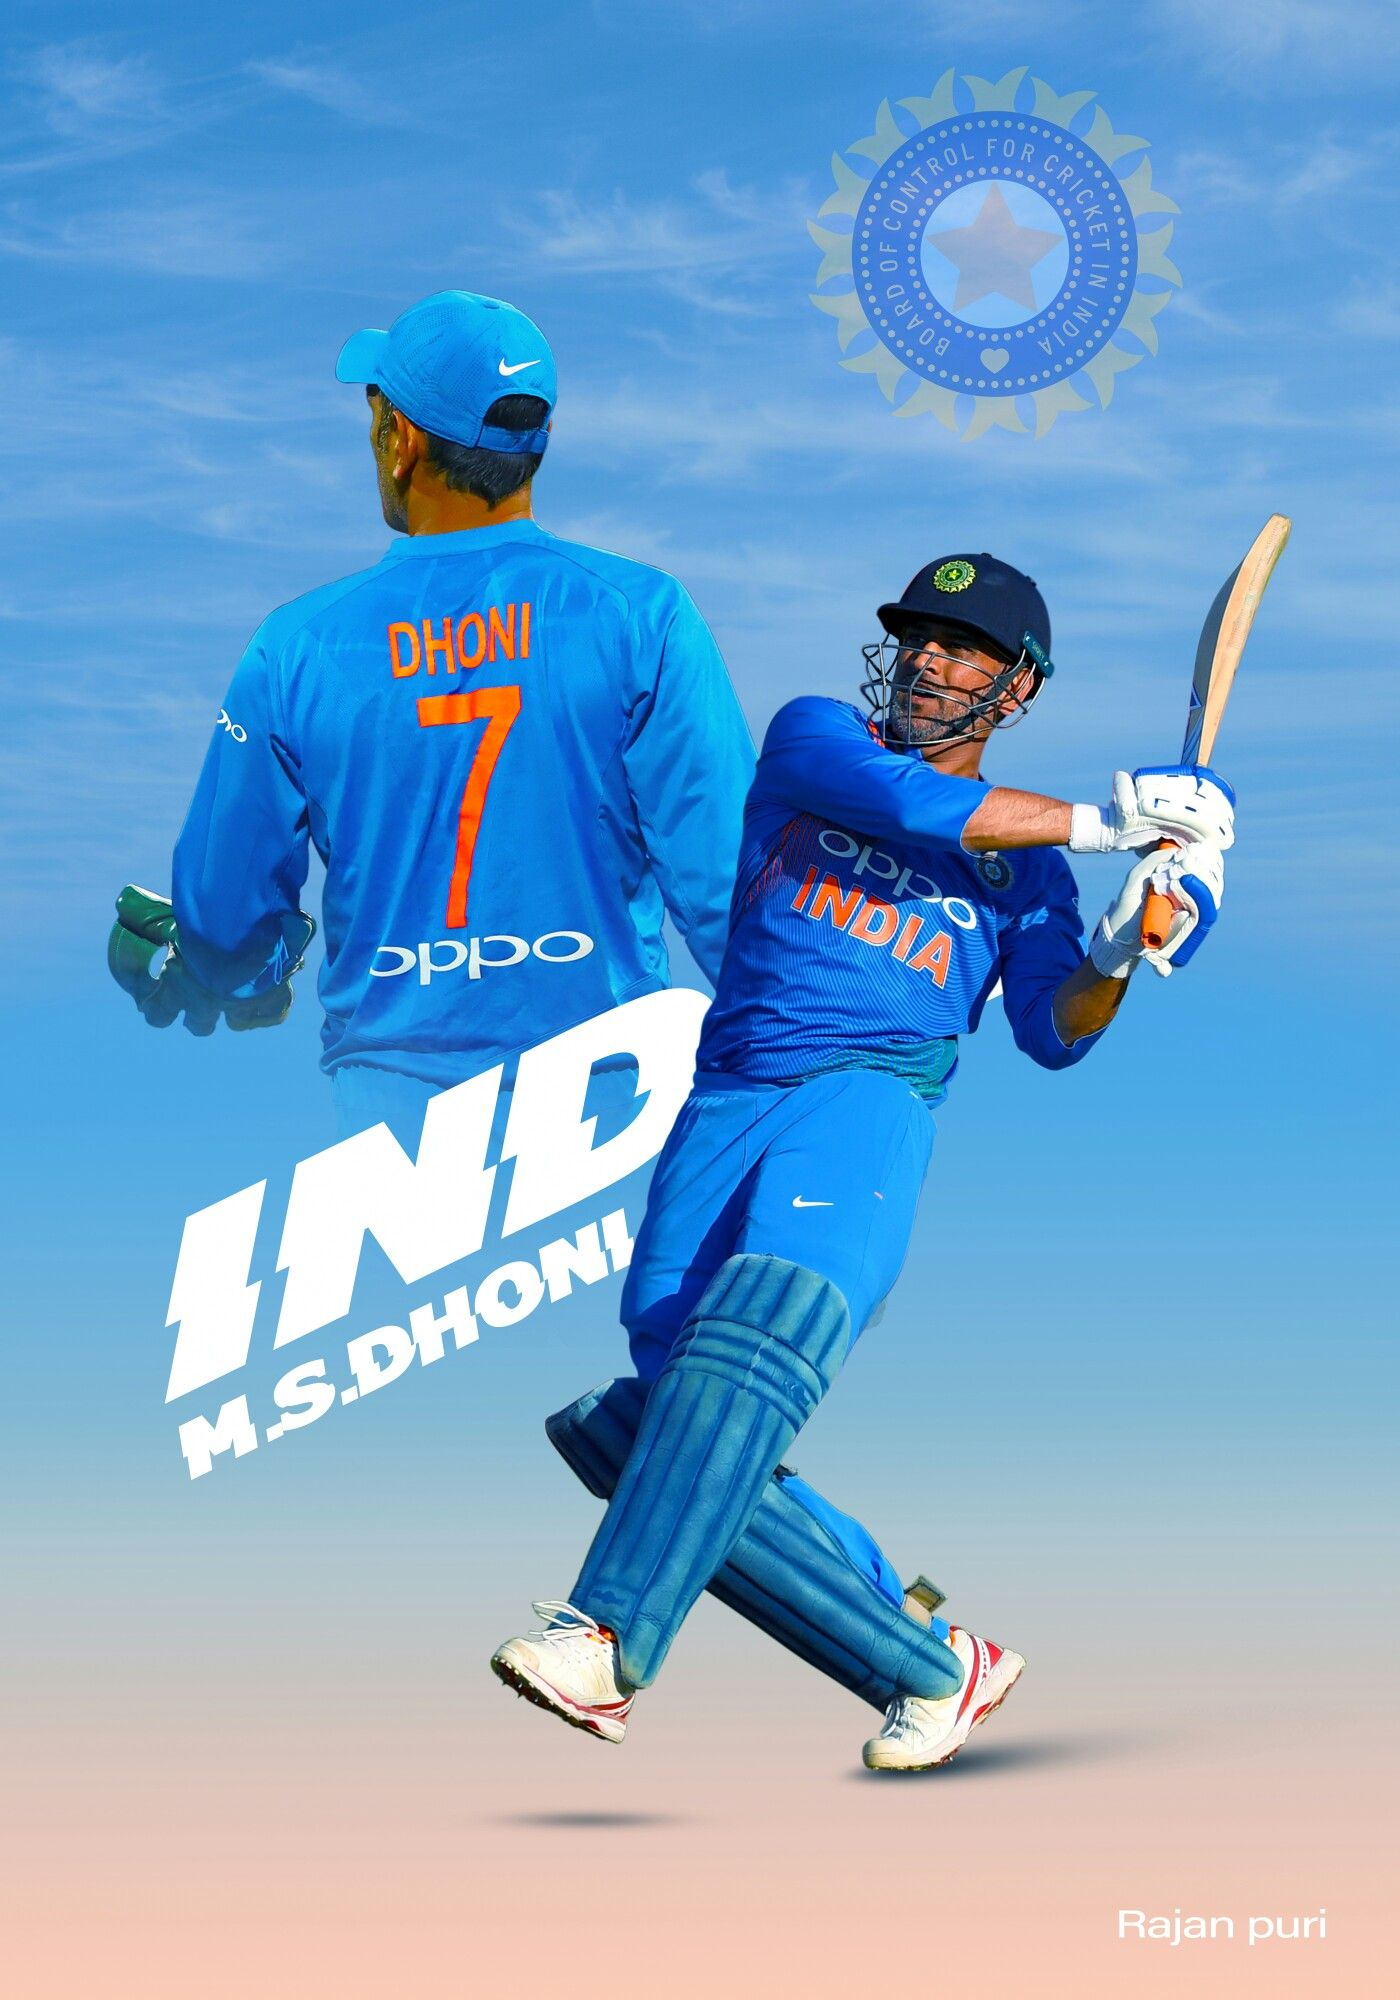 worldcup msdhoni Ms dhoni wallpapers, Dhoni wallpapers